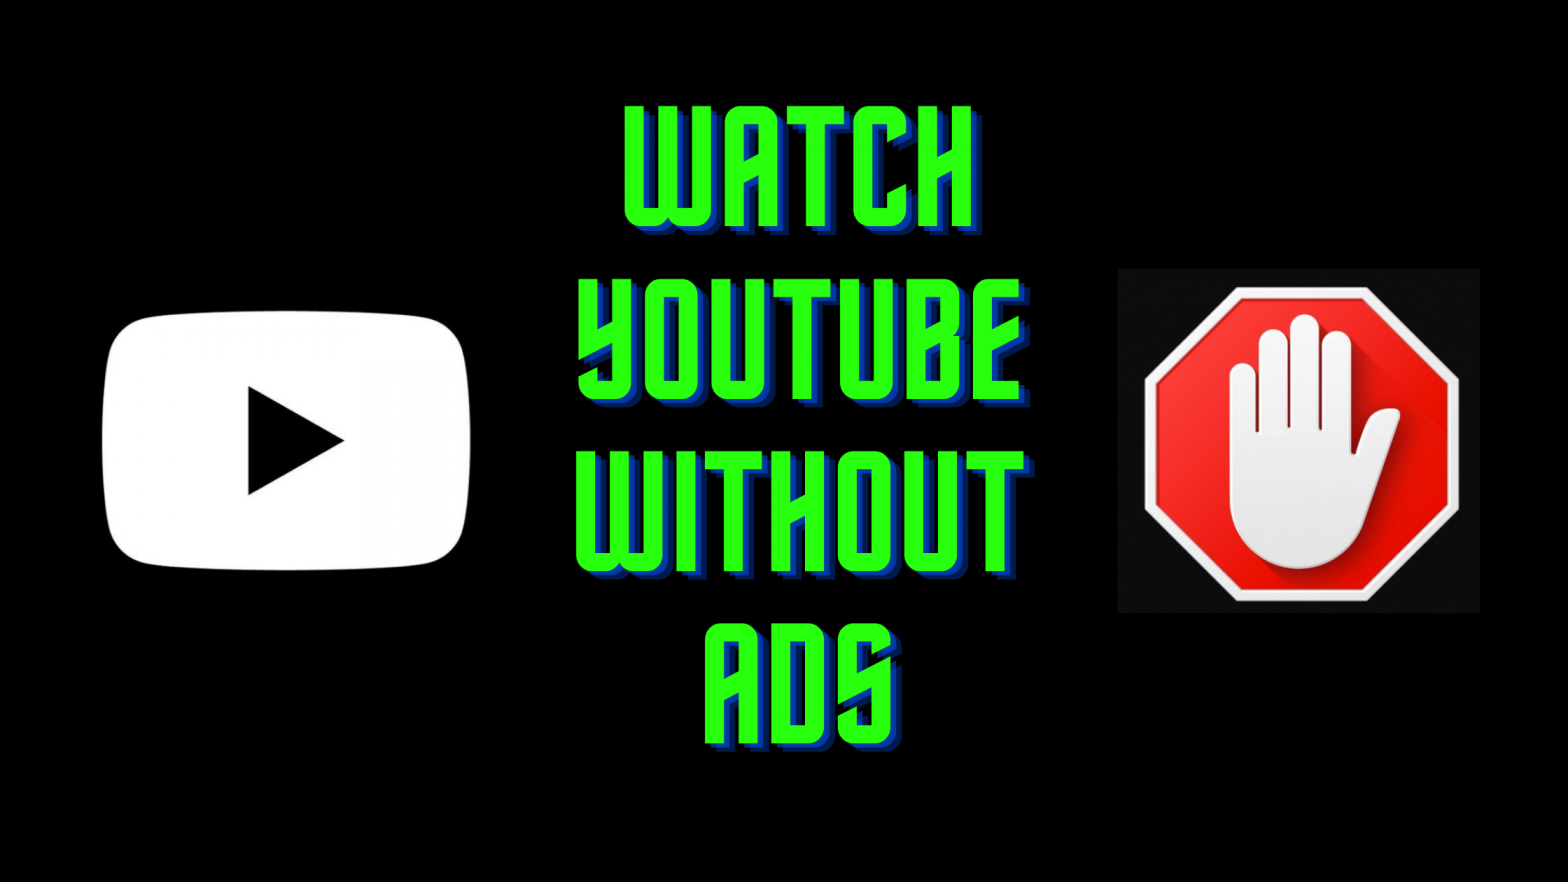 How to Watch YouTube Without Ads